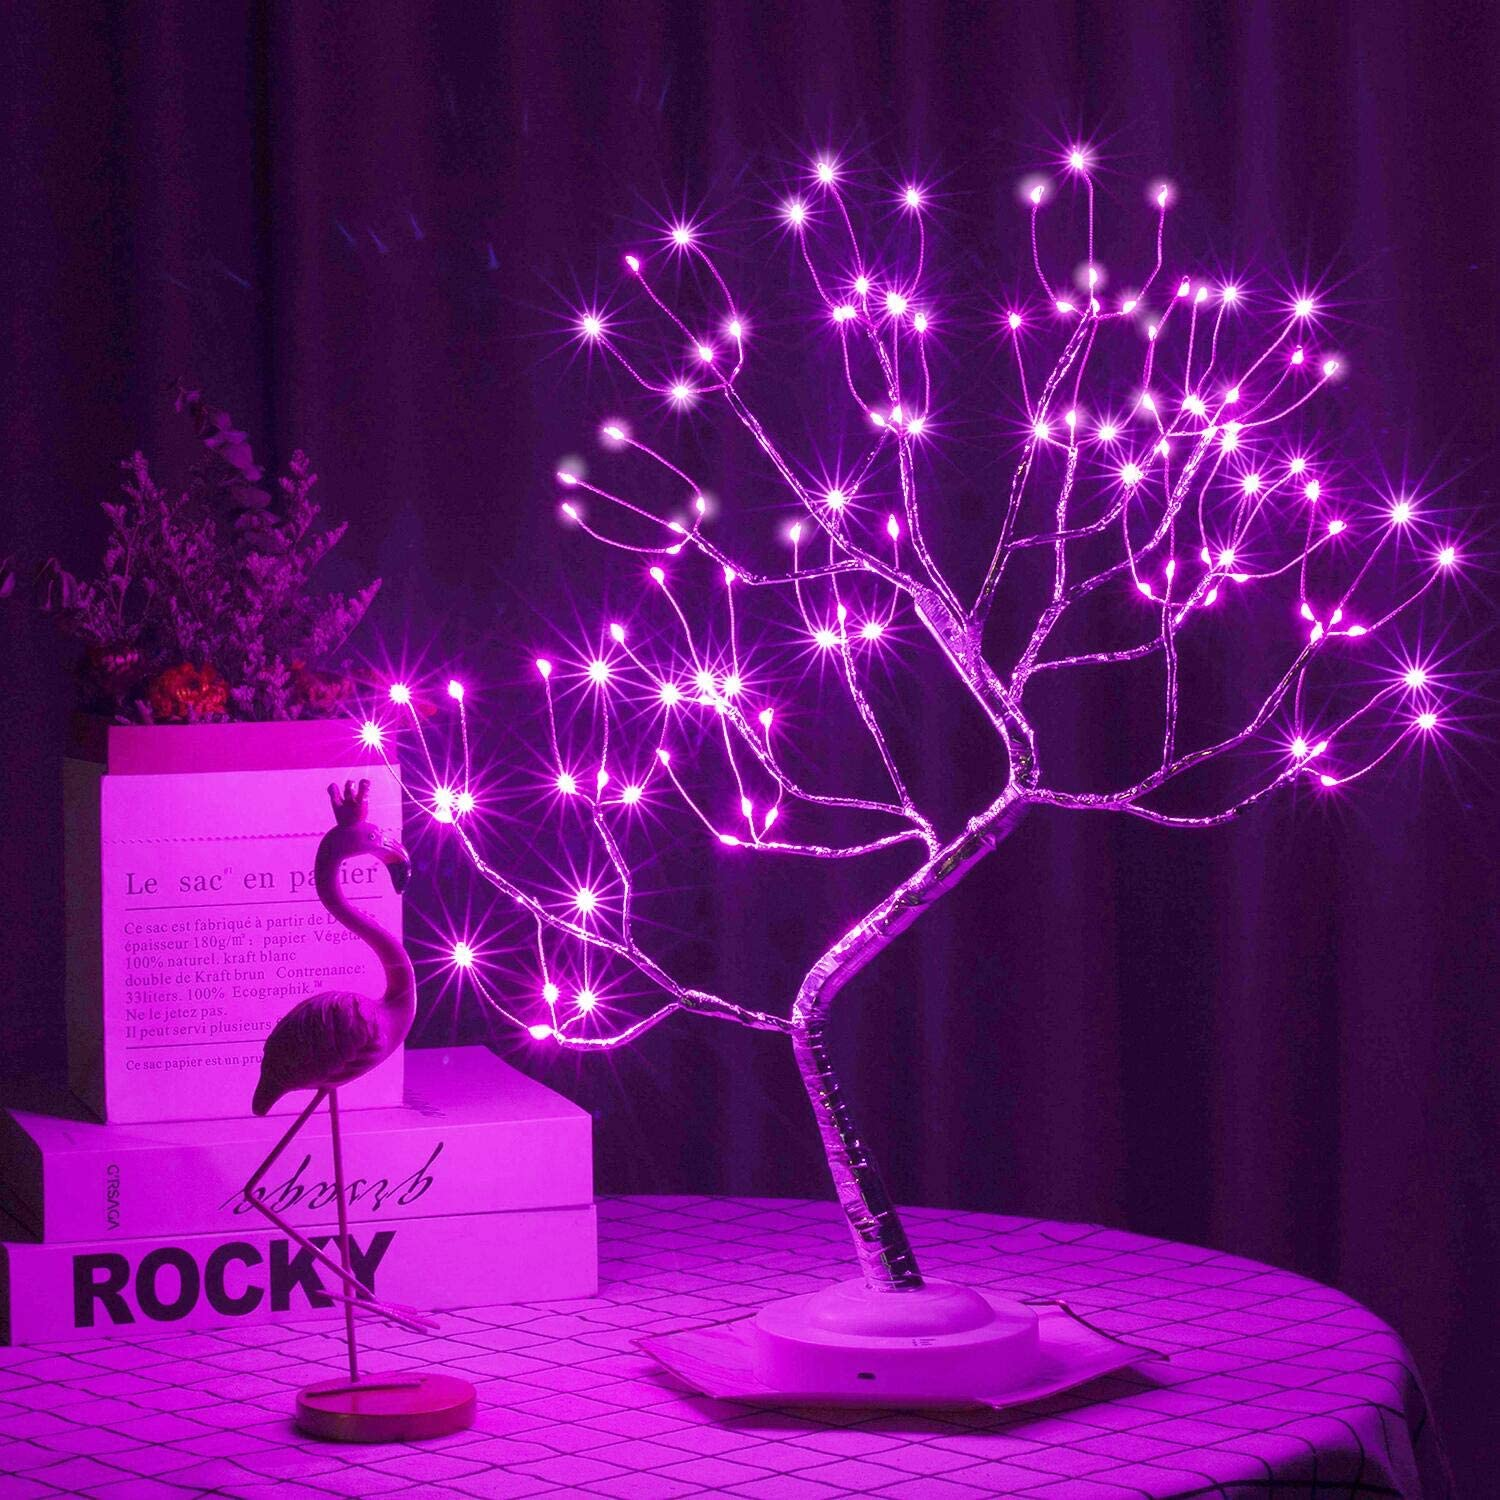 Led Tabletop Bonsai Tree Light 20 Inch 108 LED Copper Wire Halloween Christmas Night Light, Battery/USB Operated, 6h Timer DIY Adjustable Branches, for Home Decoration Light and Gift (Pink)